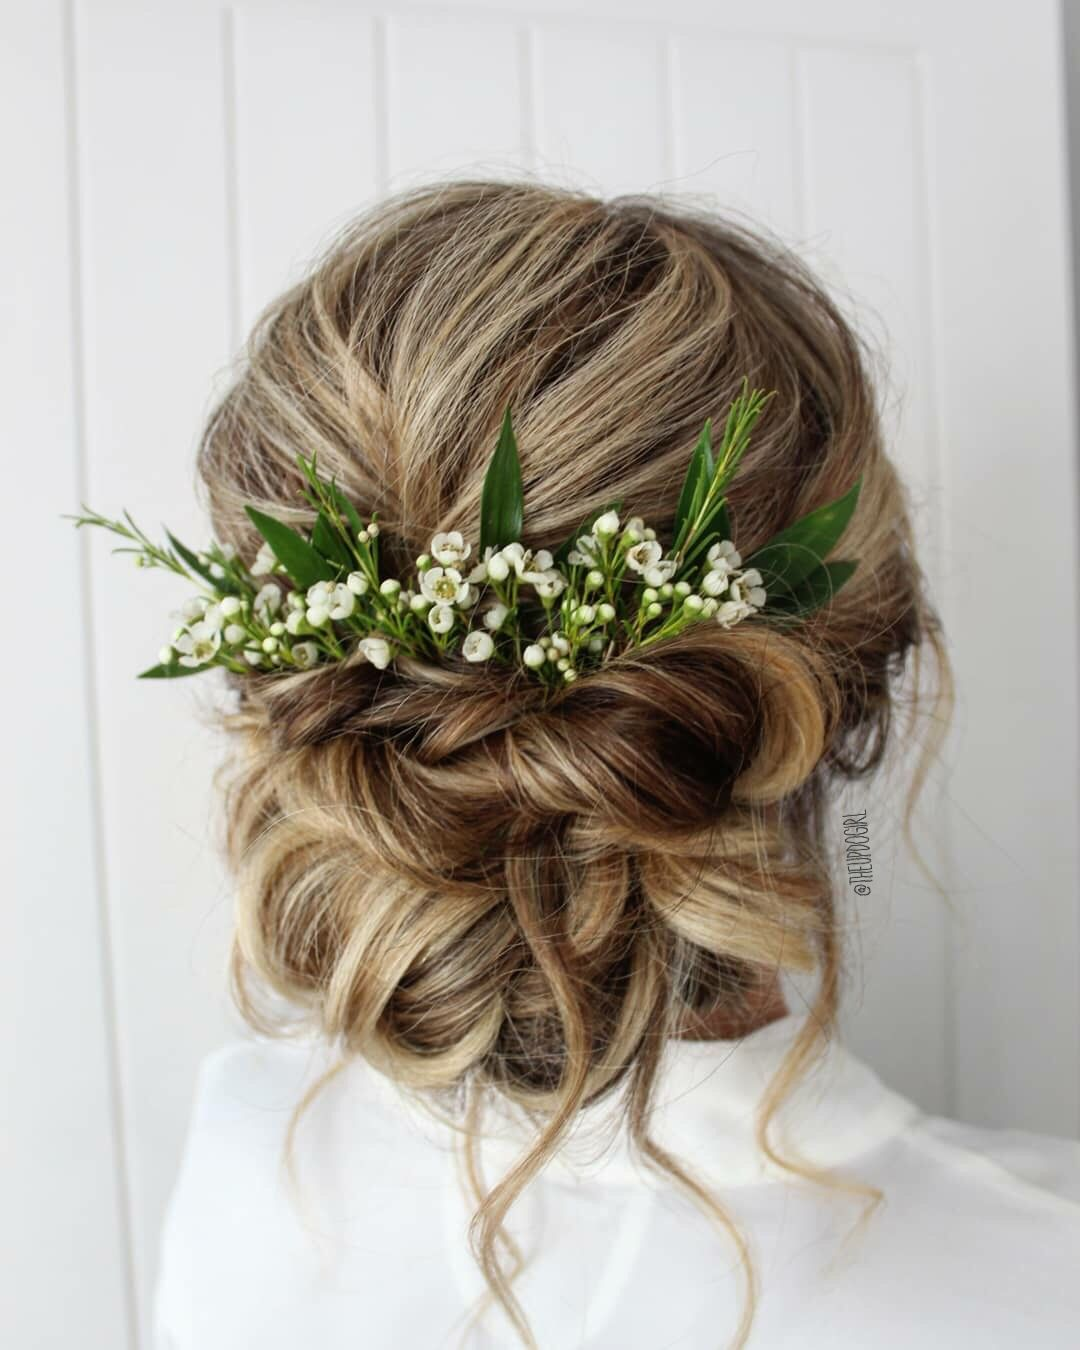 pin by kiley good on beauty: hair in 2019 | wedding